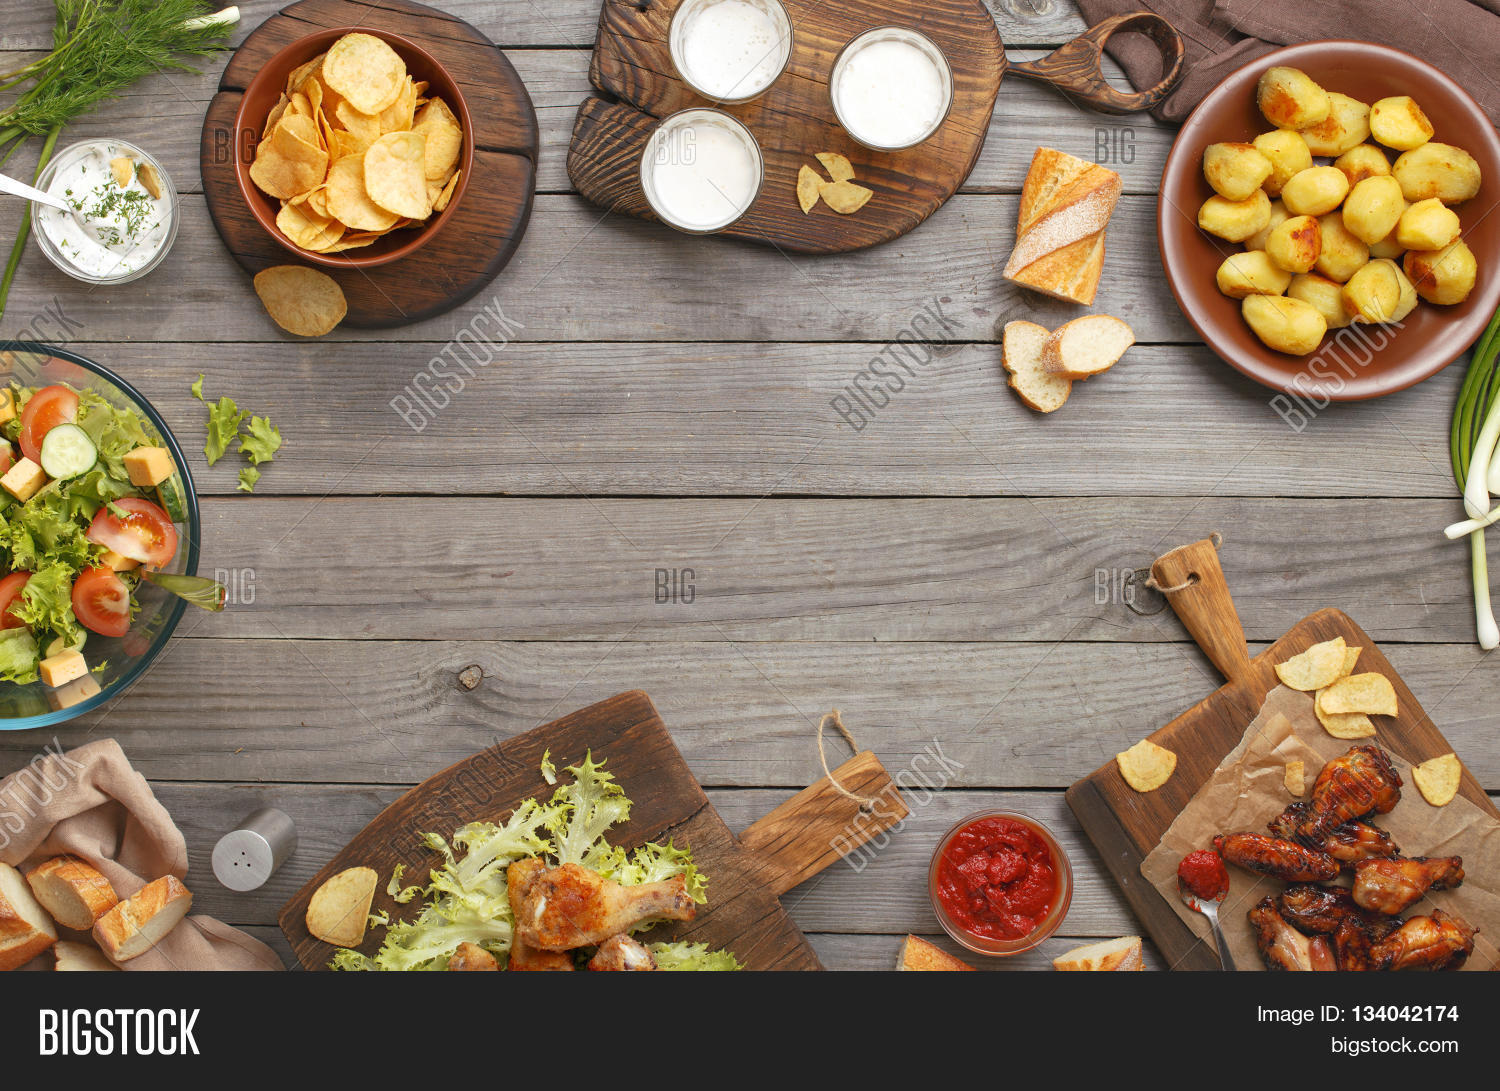 Different food cooked on grill image photo bigstock